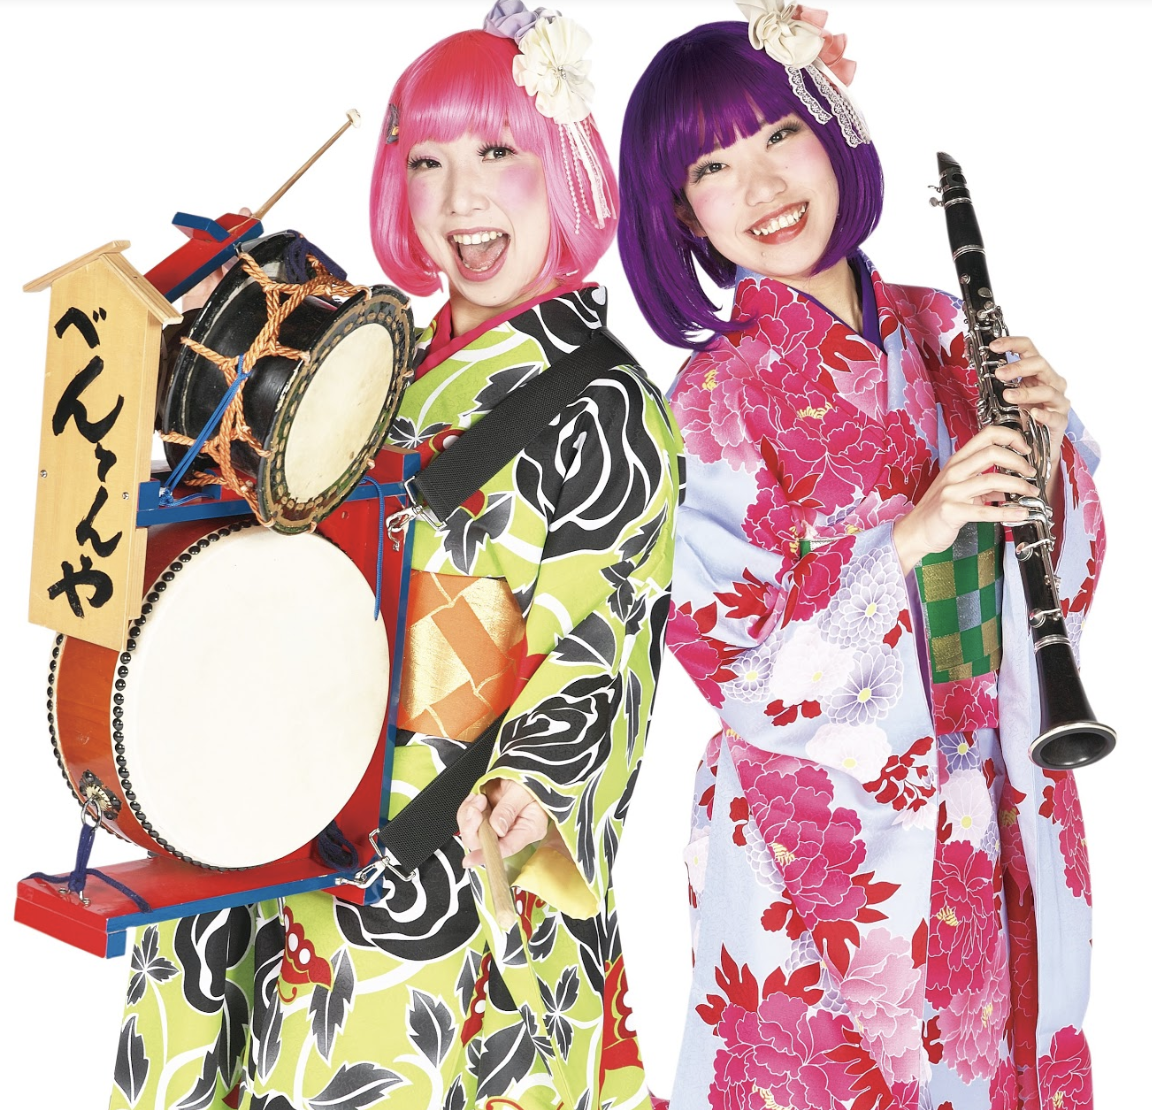 BENTENYA - Bentenya is one of the few professional femaleChindon-ya in Japan, a kind of marching banddedicated to street advertising who also performsat events or matsuri.